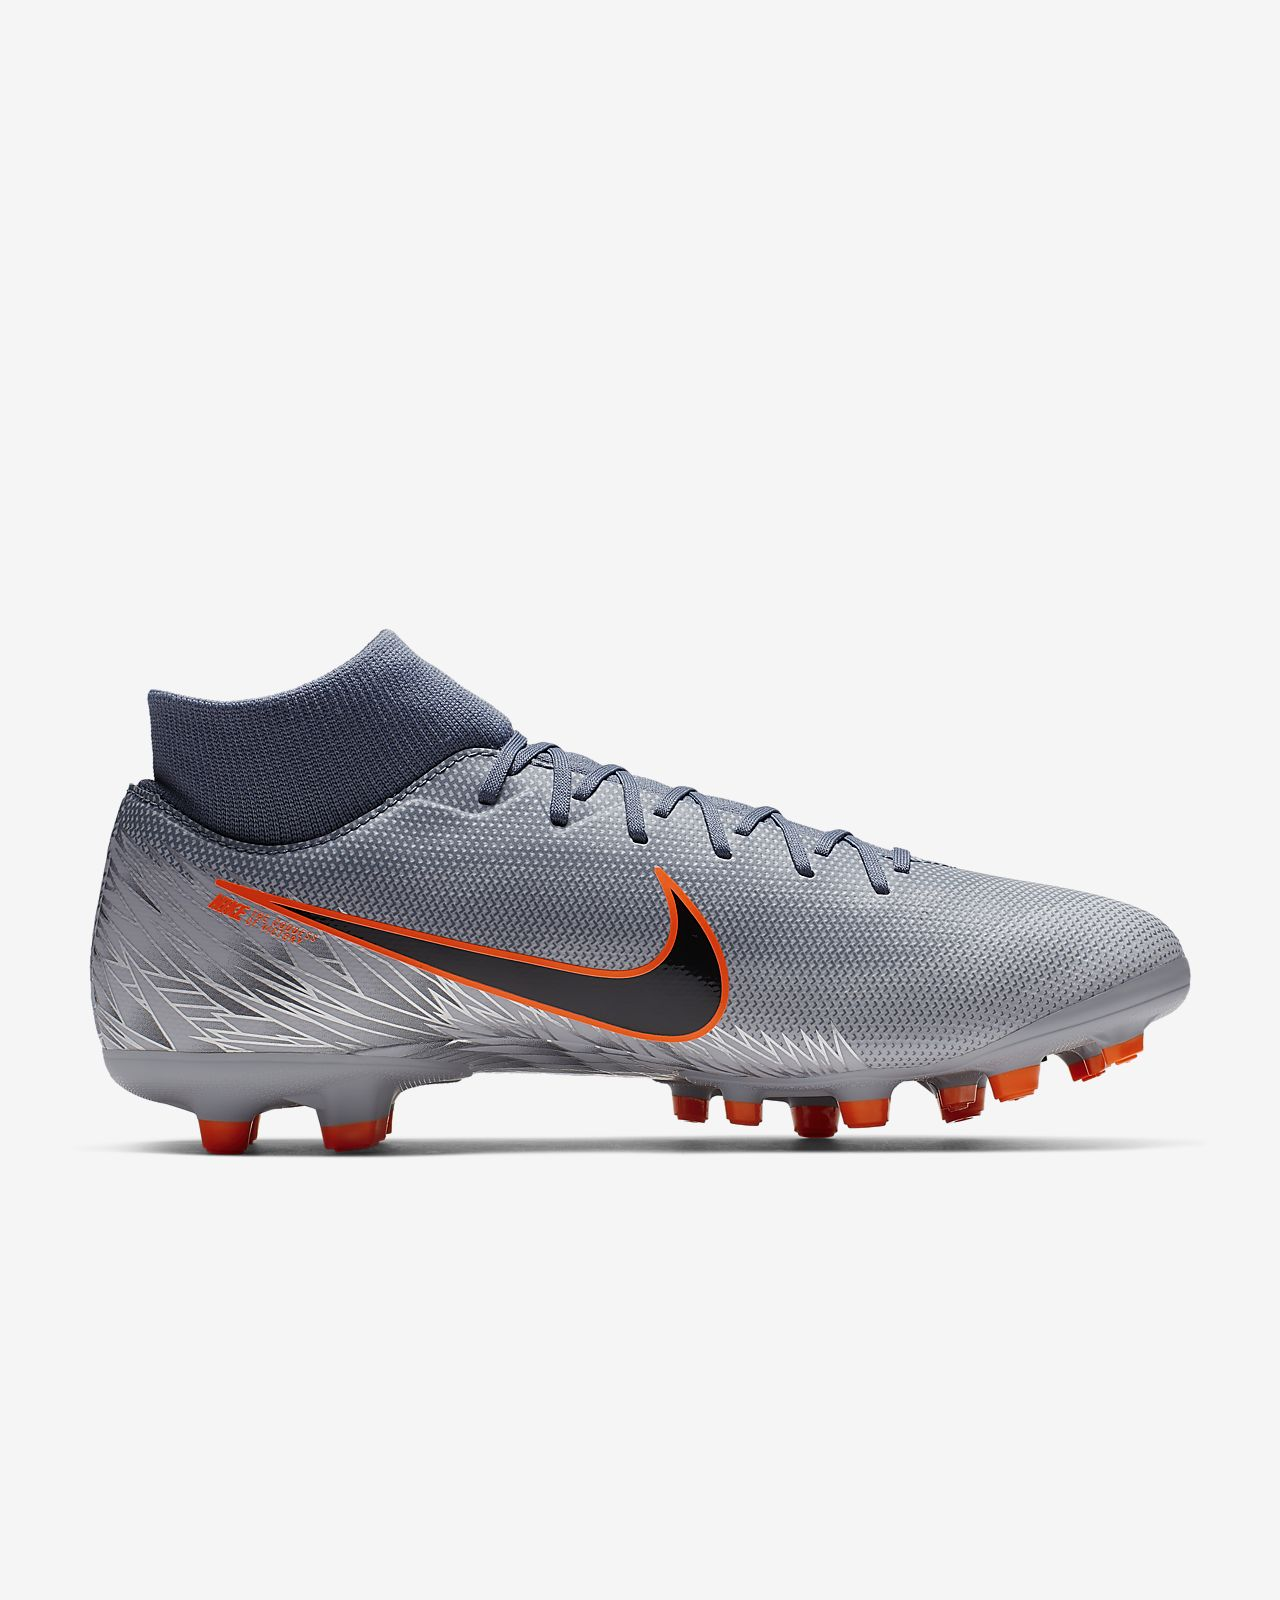 promo code b33f1 21c66 ... Chaussure de football multi-terrains à crampons Nike Mercurial Superfly  6 Academy MG